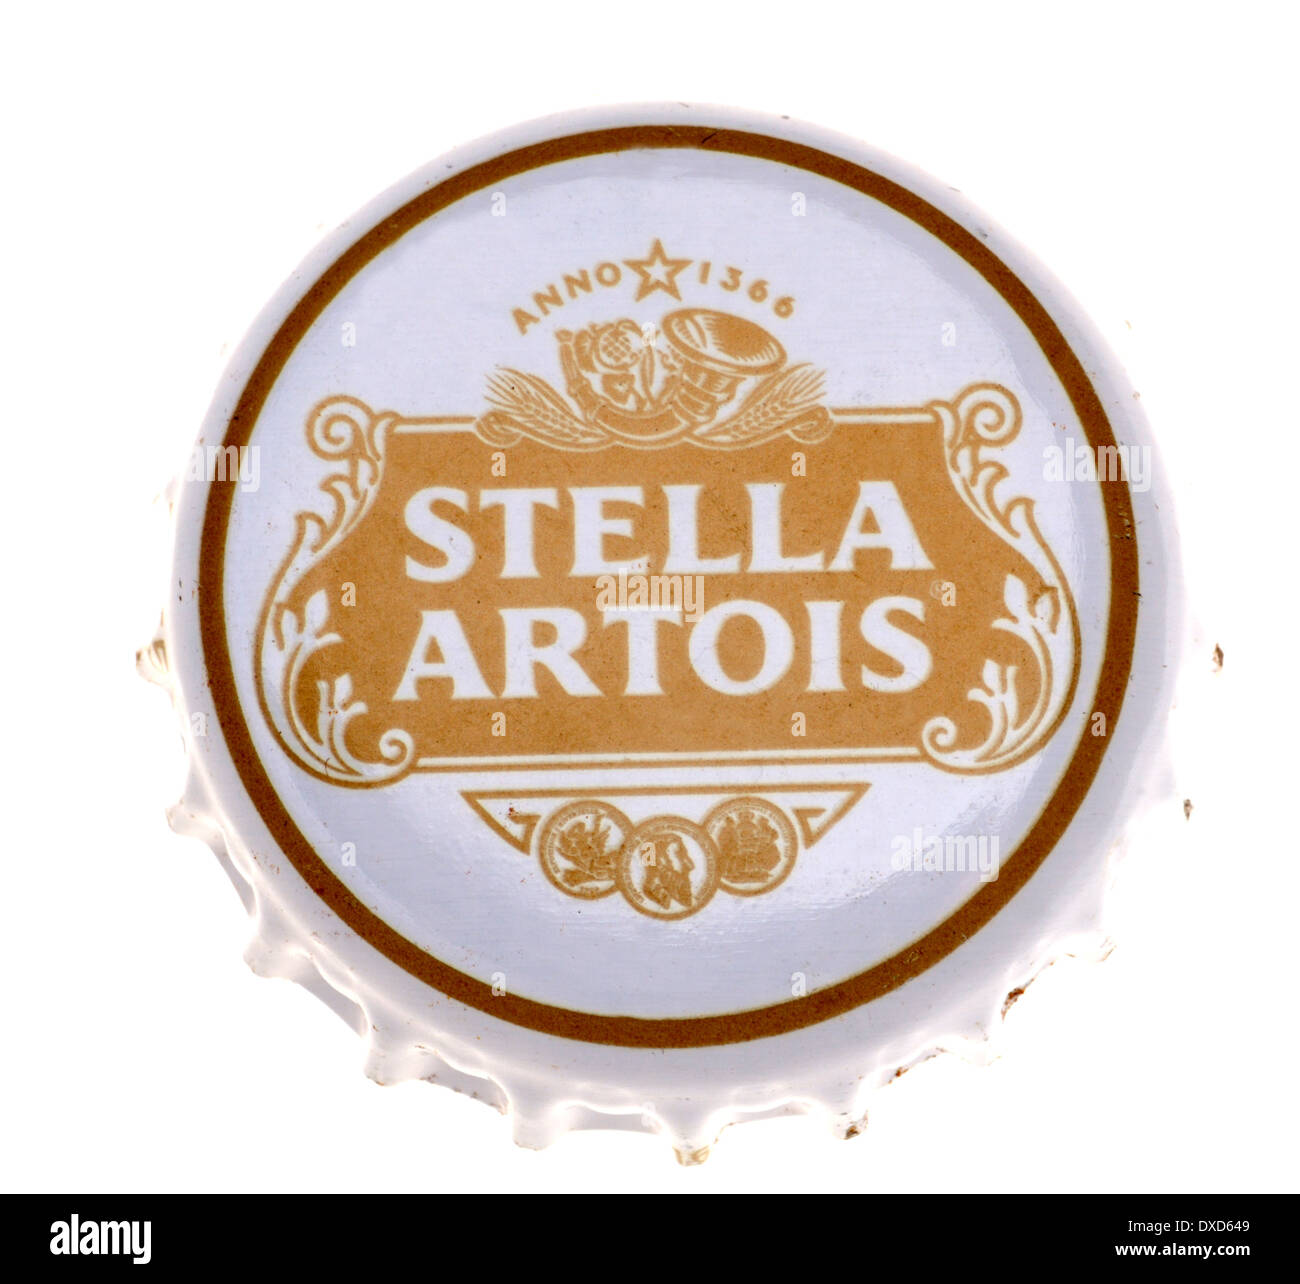 Beer bottle cap - Stella Artois (Belgium) Stock Photo